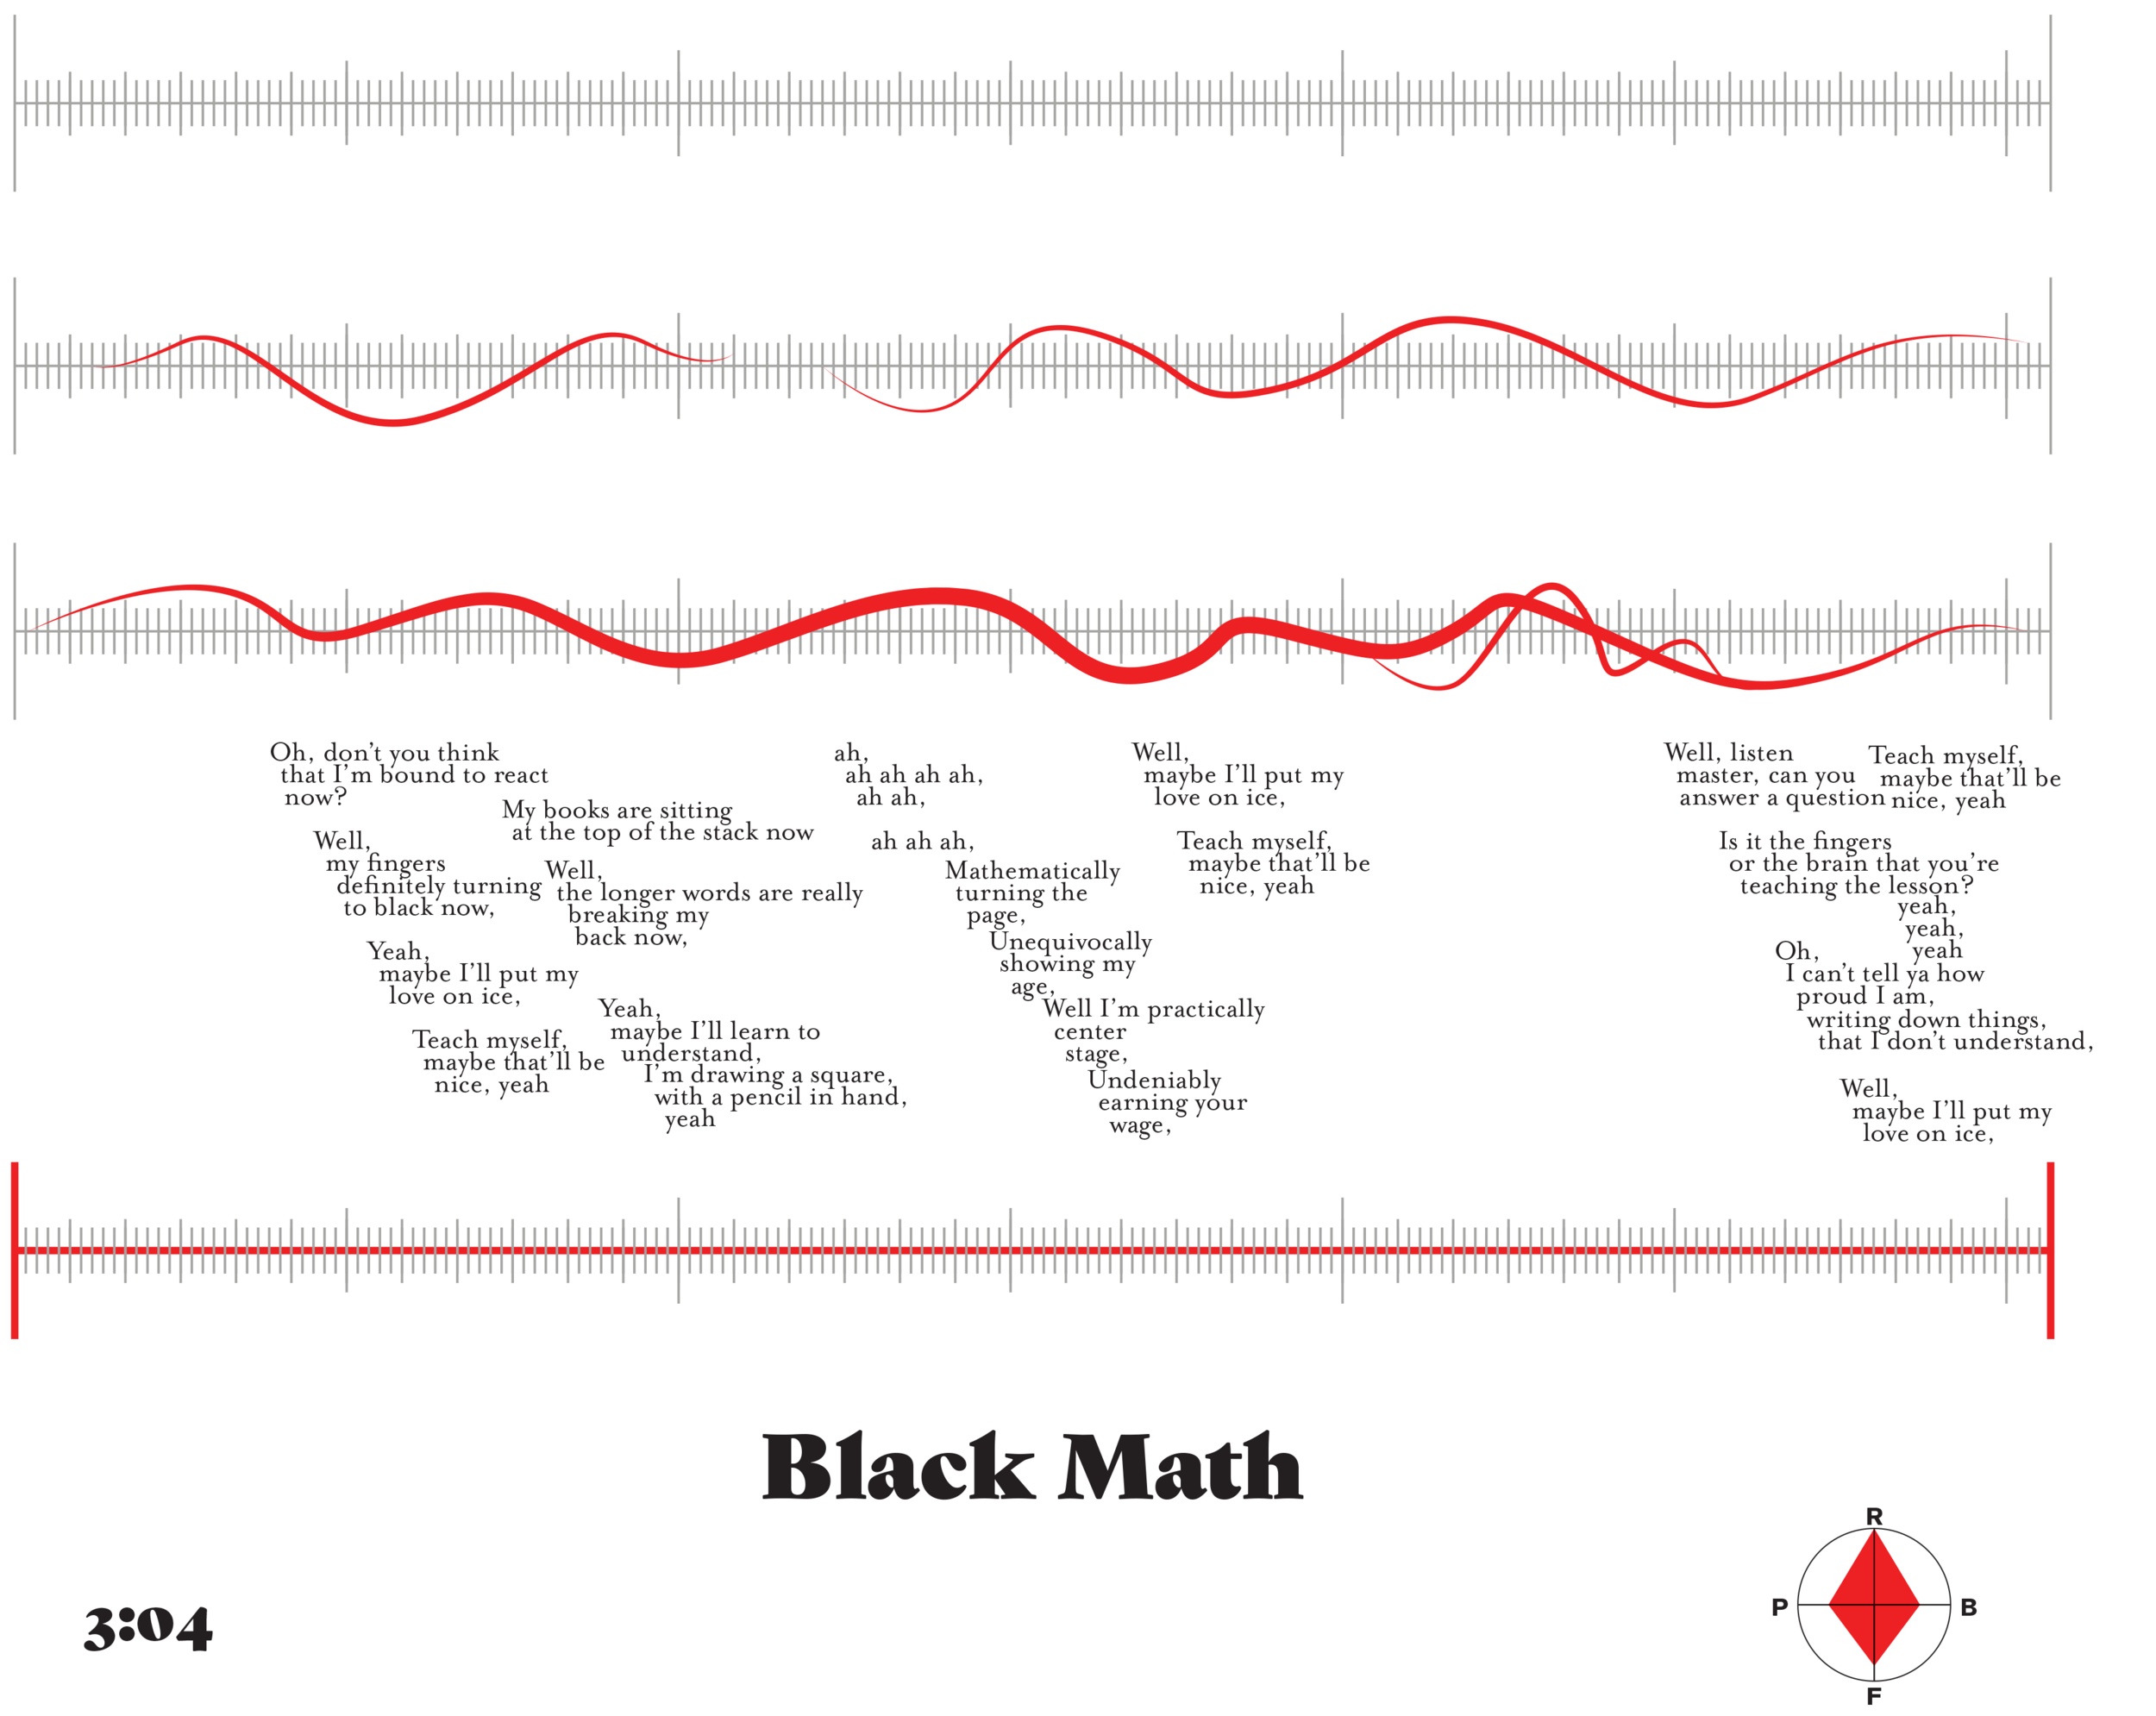 02 - Black Math.png